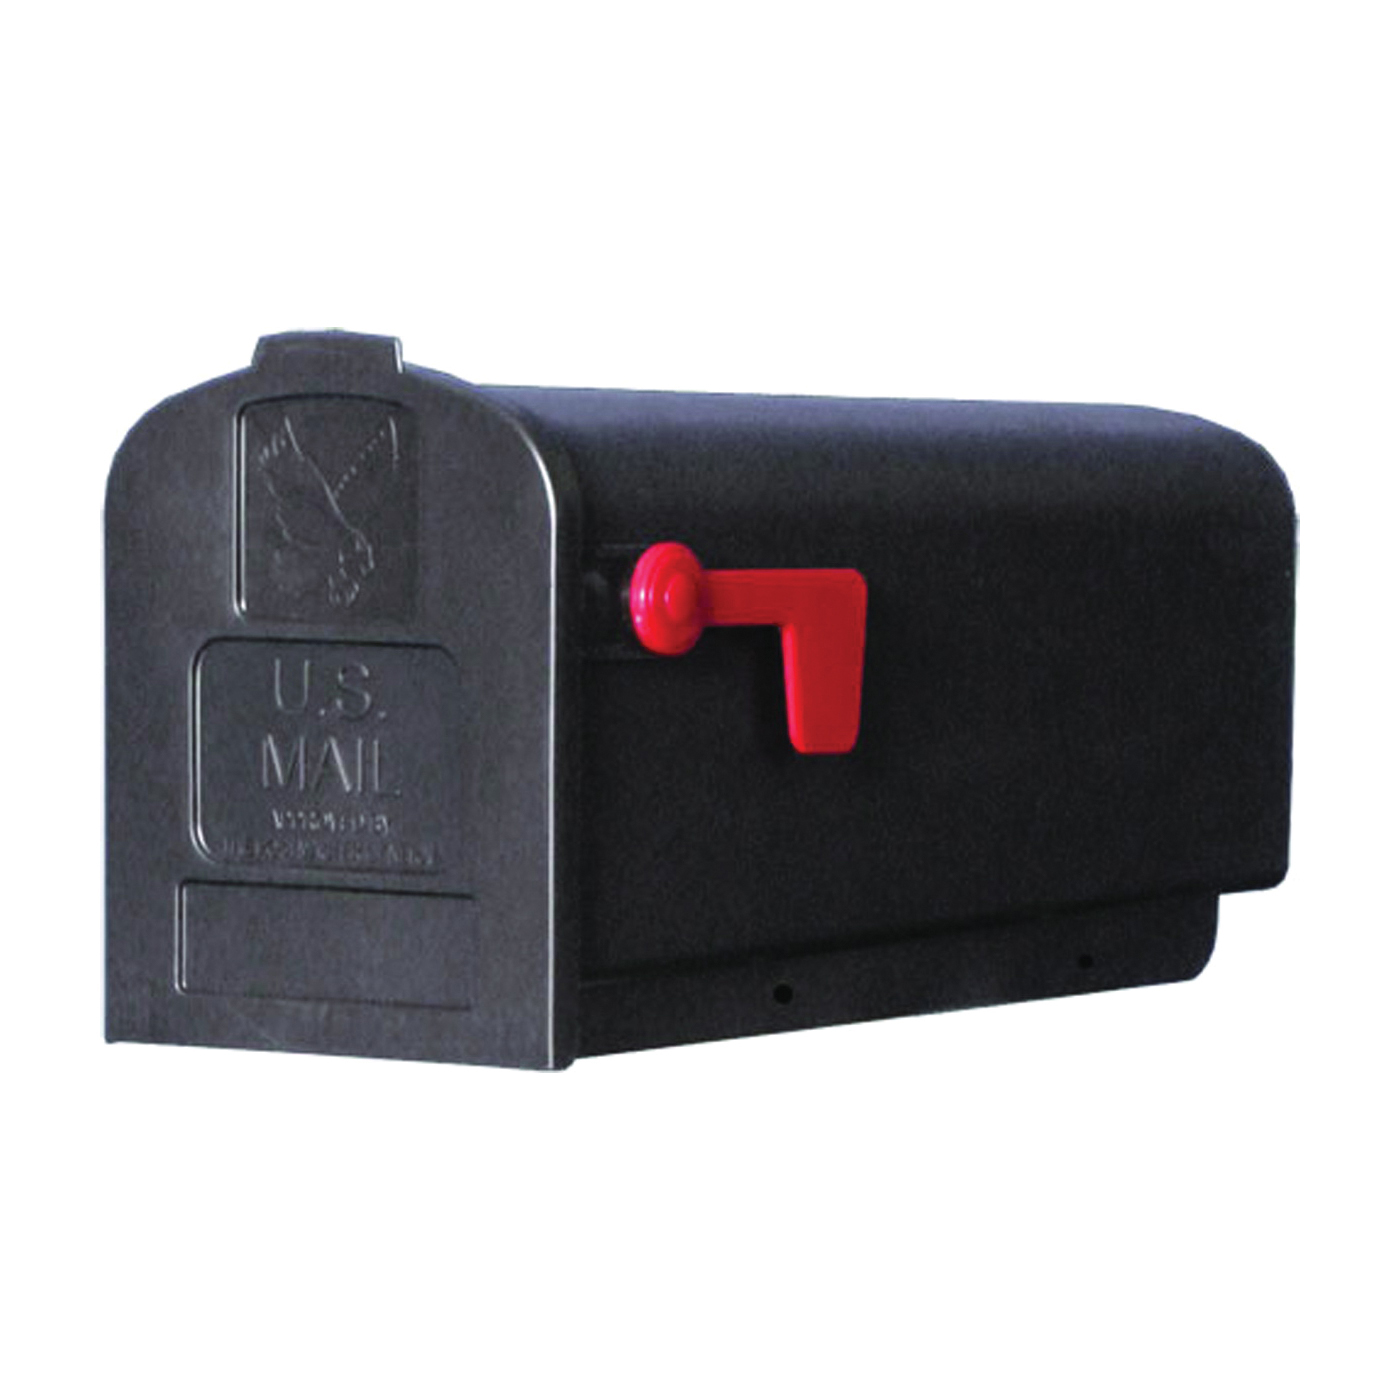 Picture of Gibraltar Mailboxes Parson PL10B0201 Rural Mailbox, 875 cu-in Capacity, Plastic, 7.9 in W, 19.4 in D, 9.6 in H